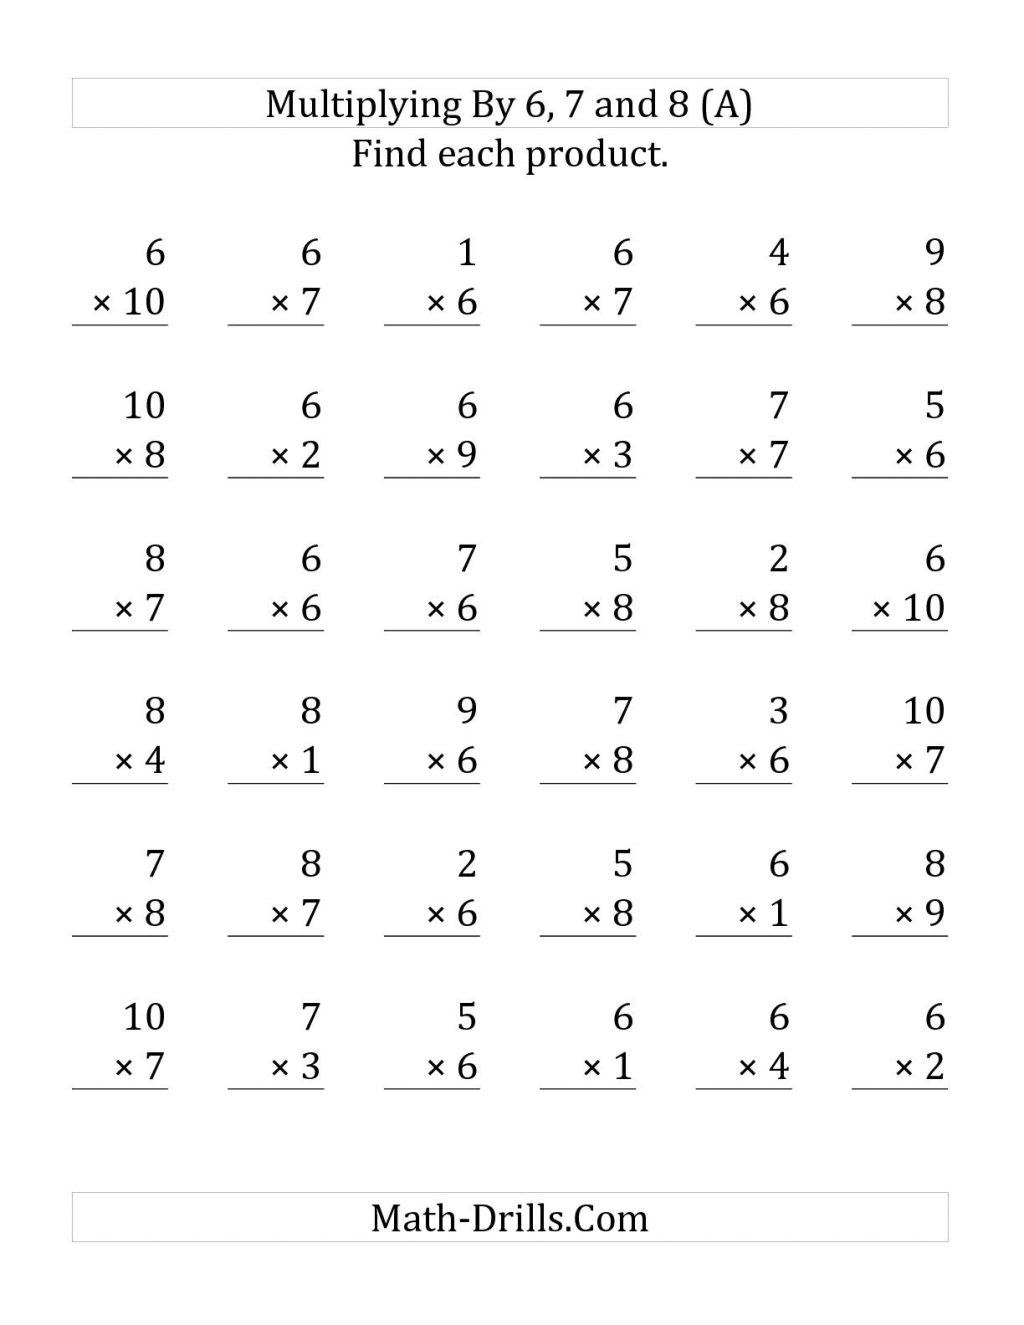 Multiplication Worksheets 6 7 8 9 intended for Multiplication Worksheets 6 7 8 9